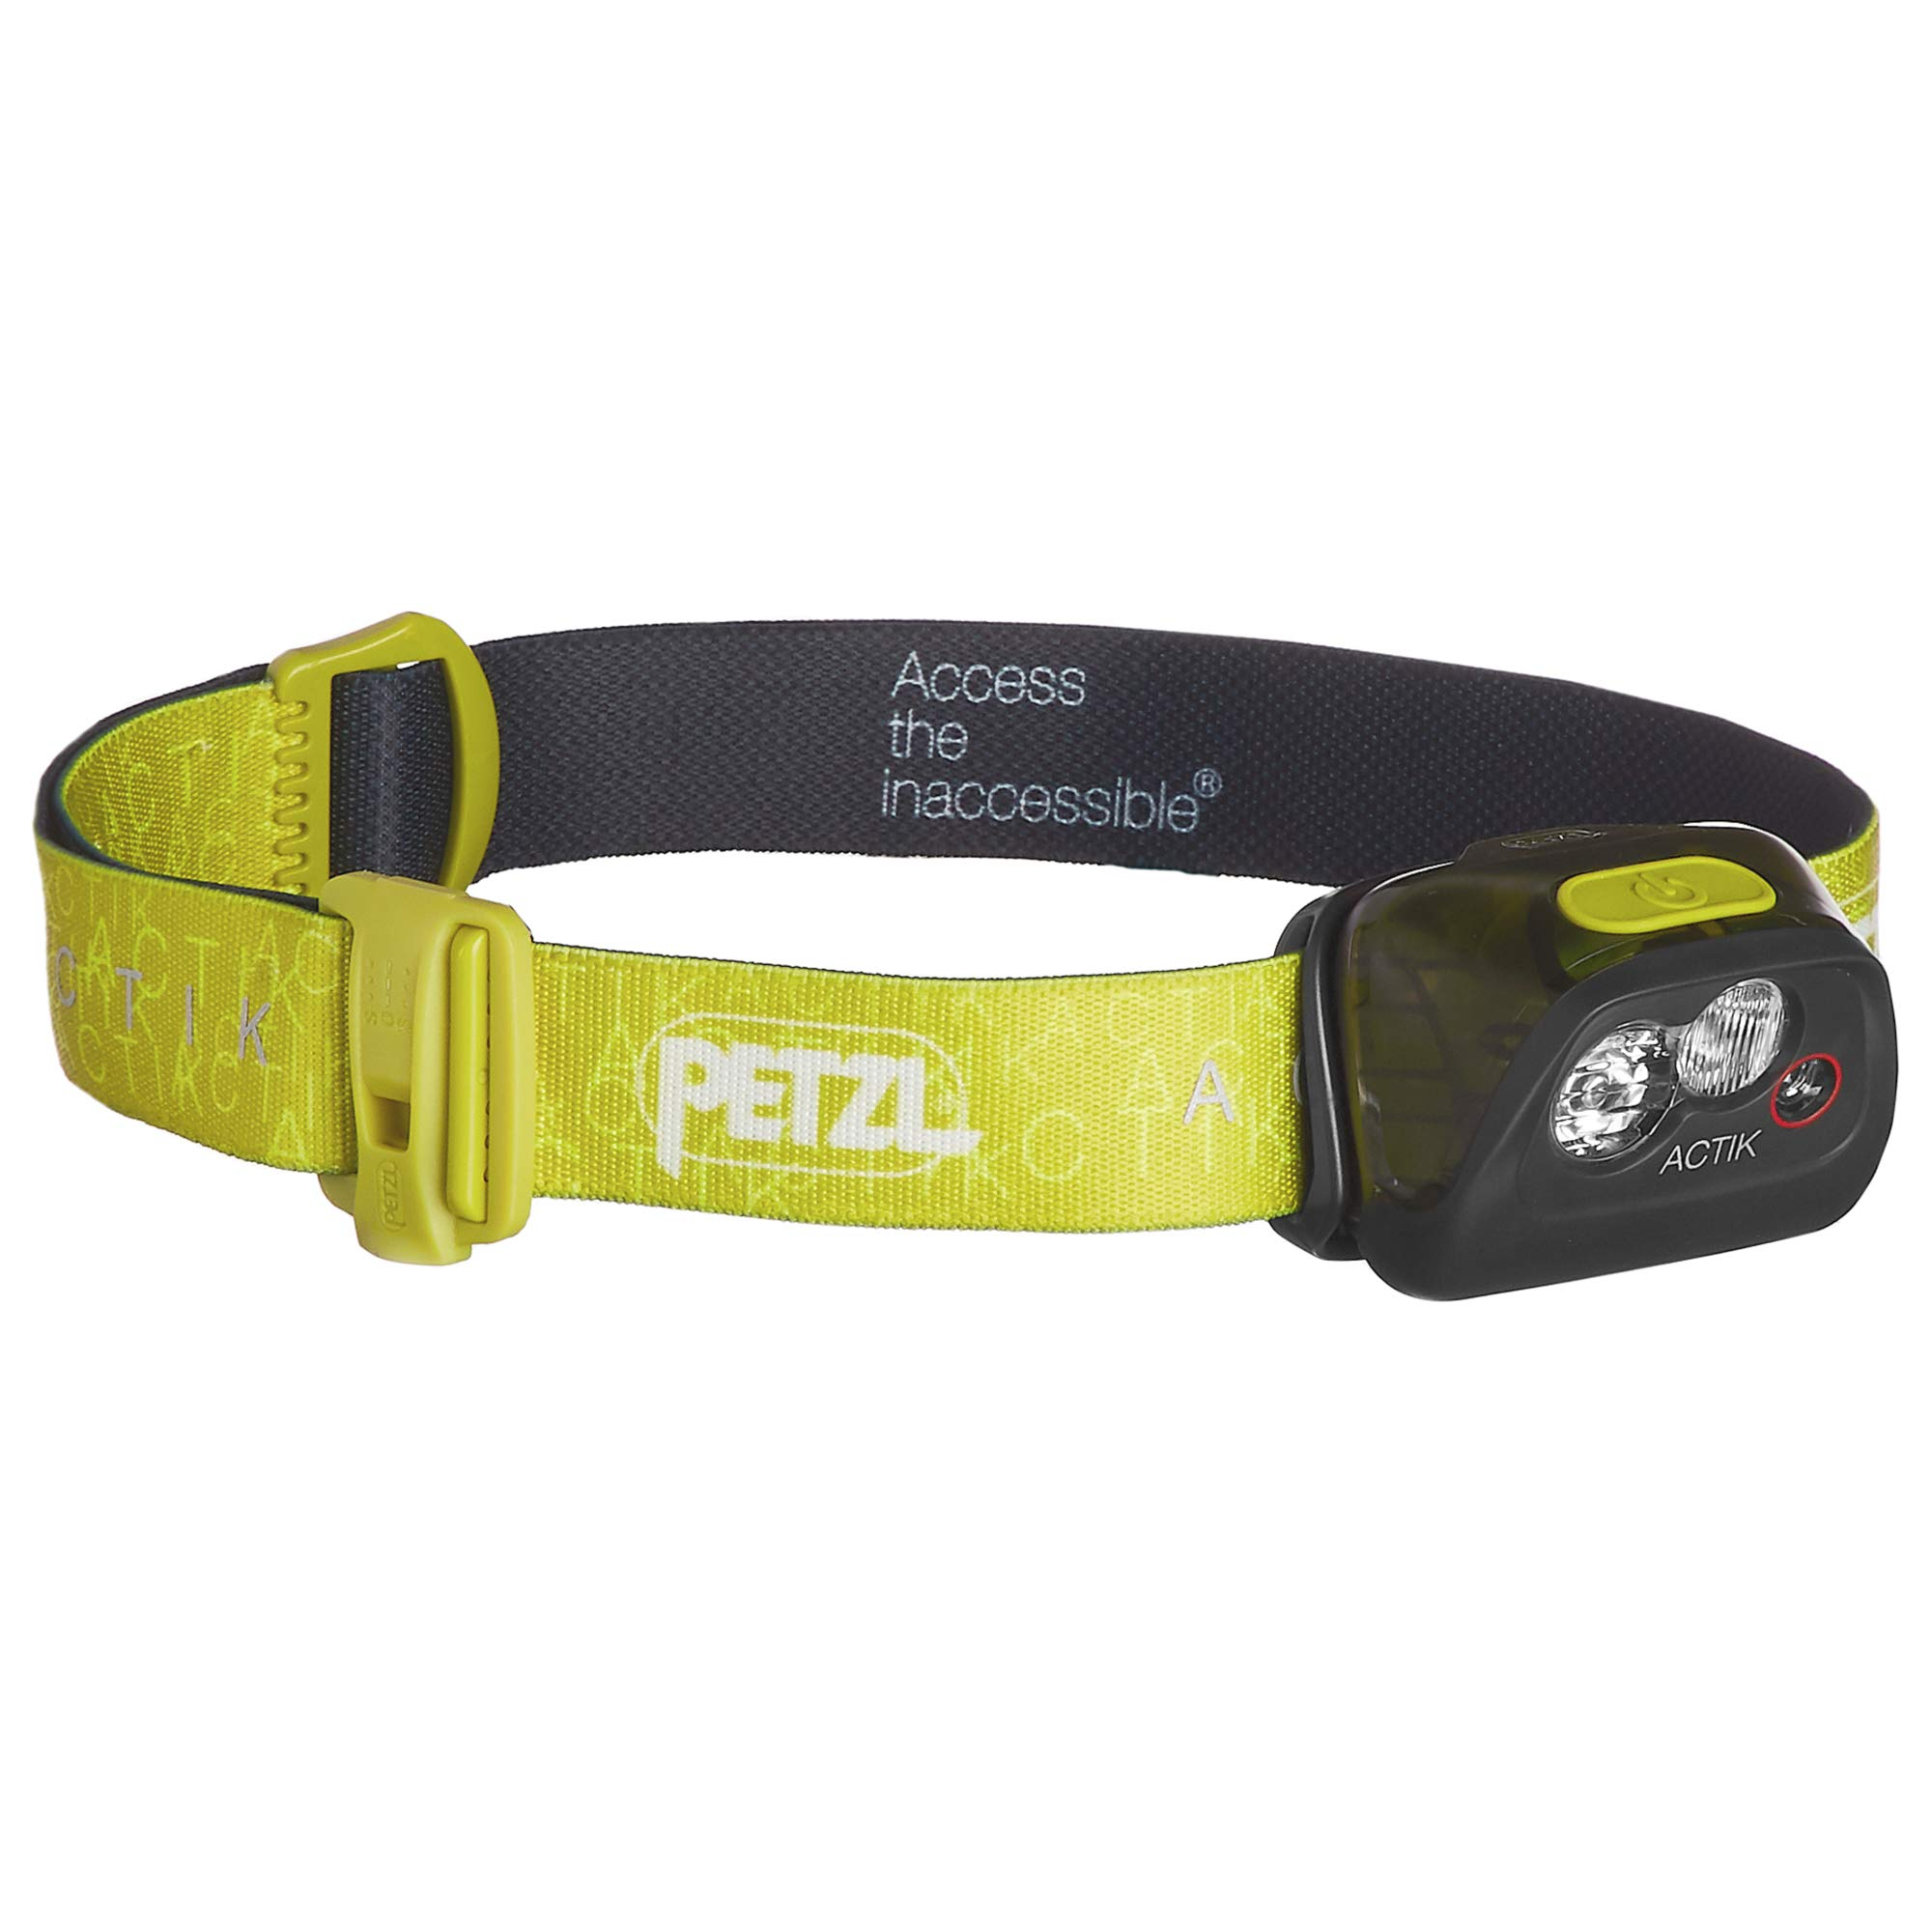 Petzl - ACTIK Headlamp, 300 Lumens, Active Lighting,Green